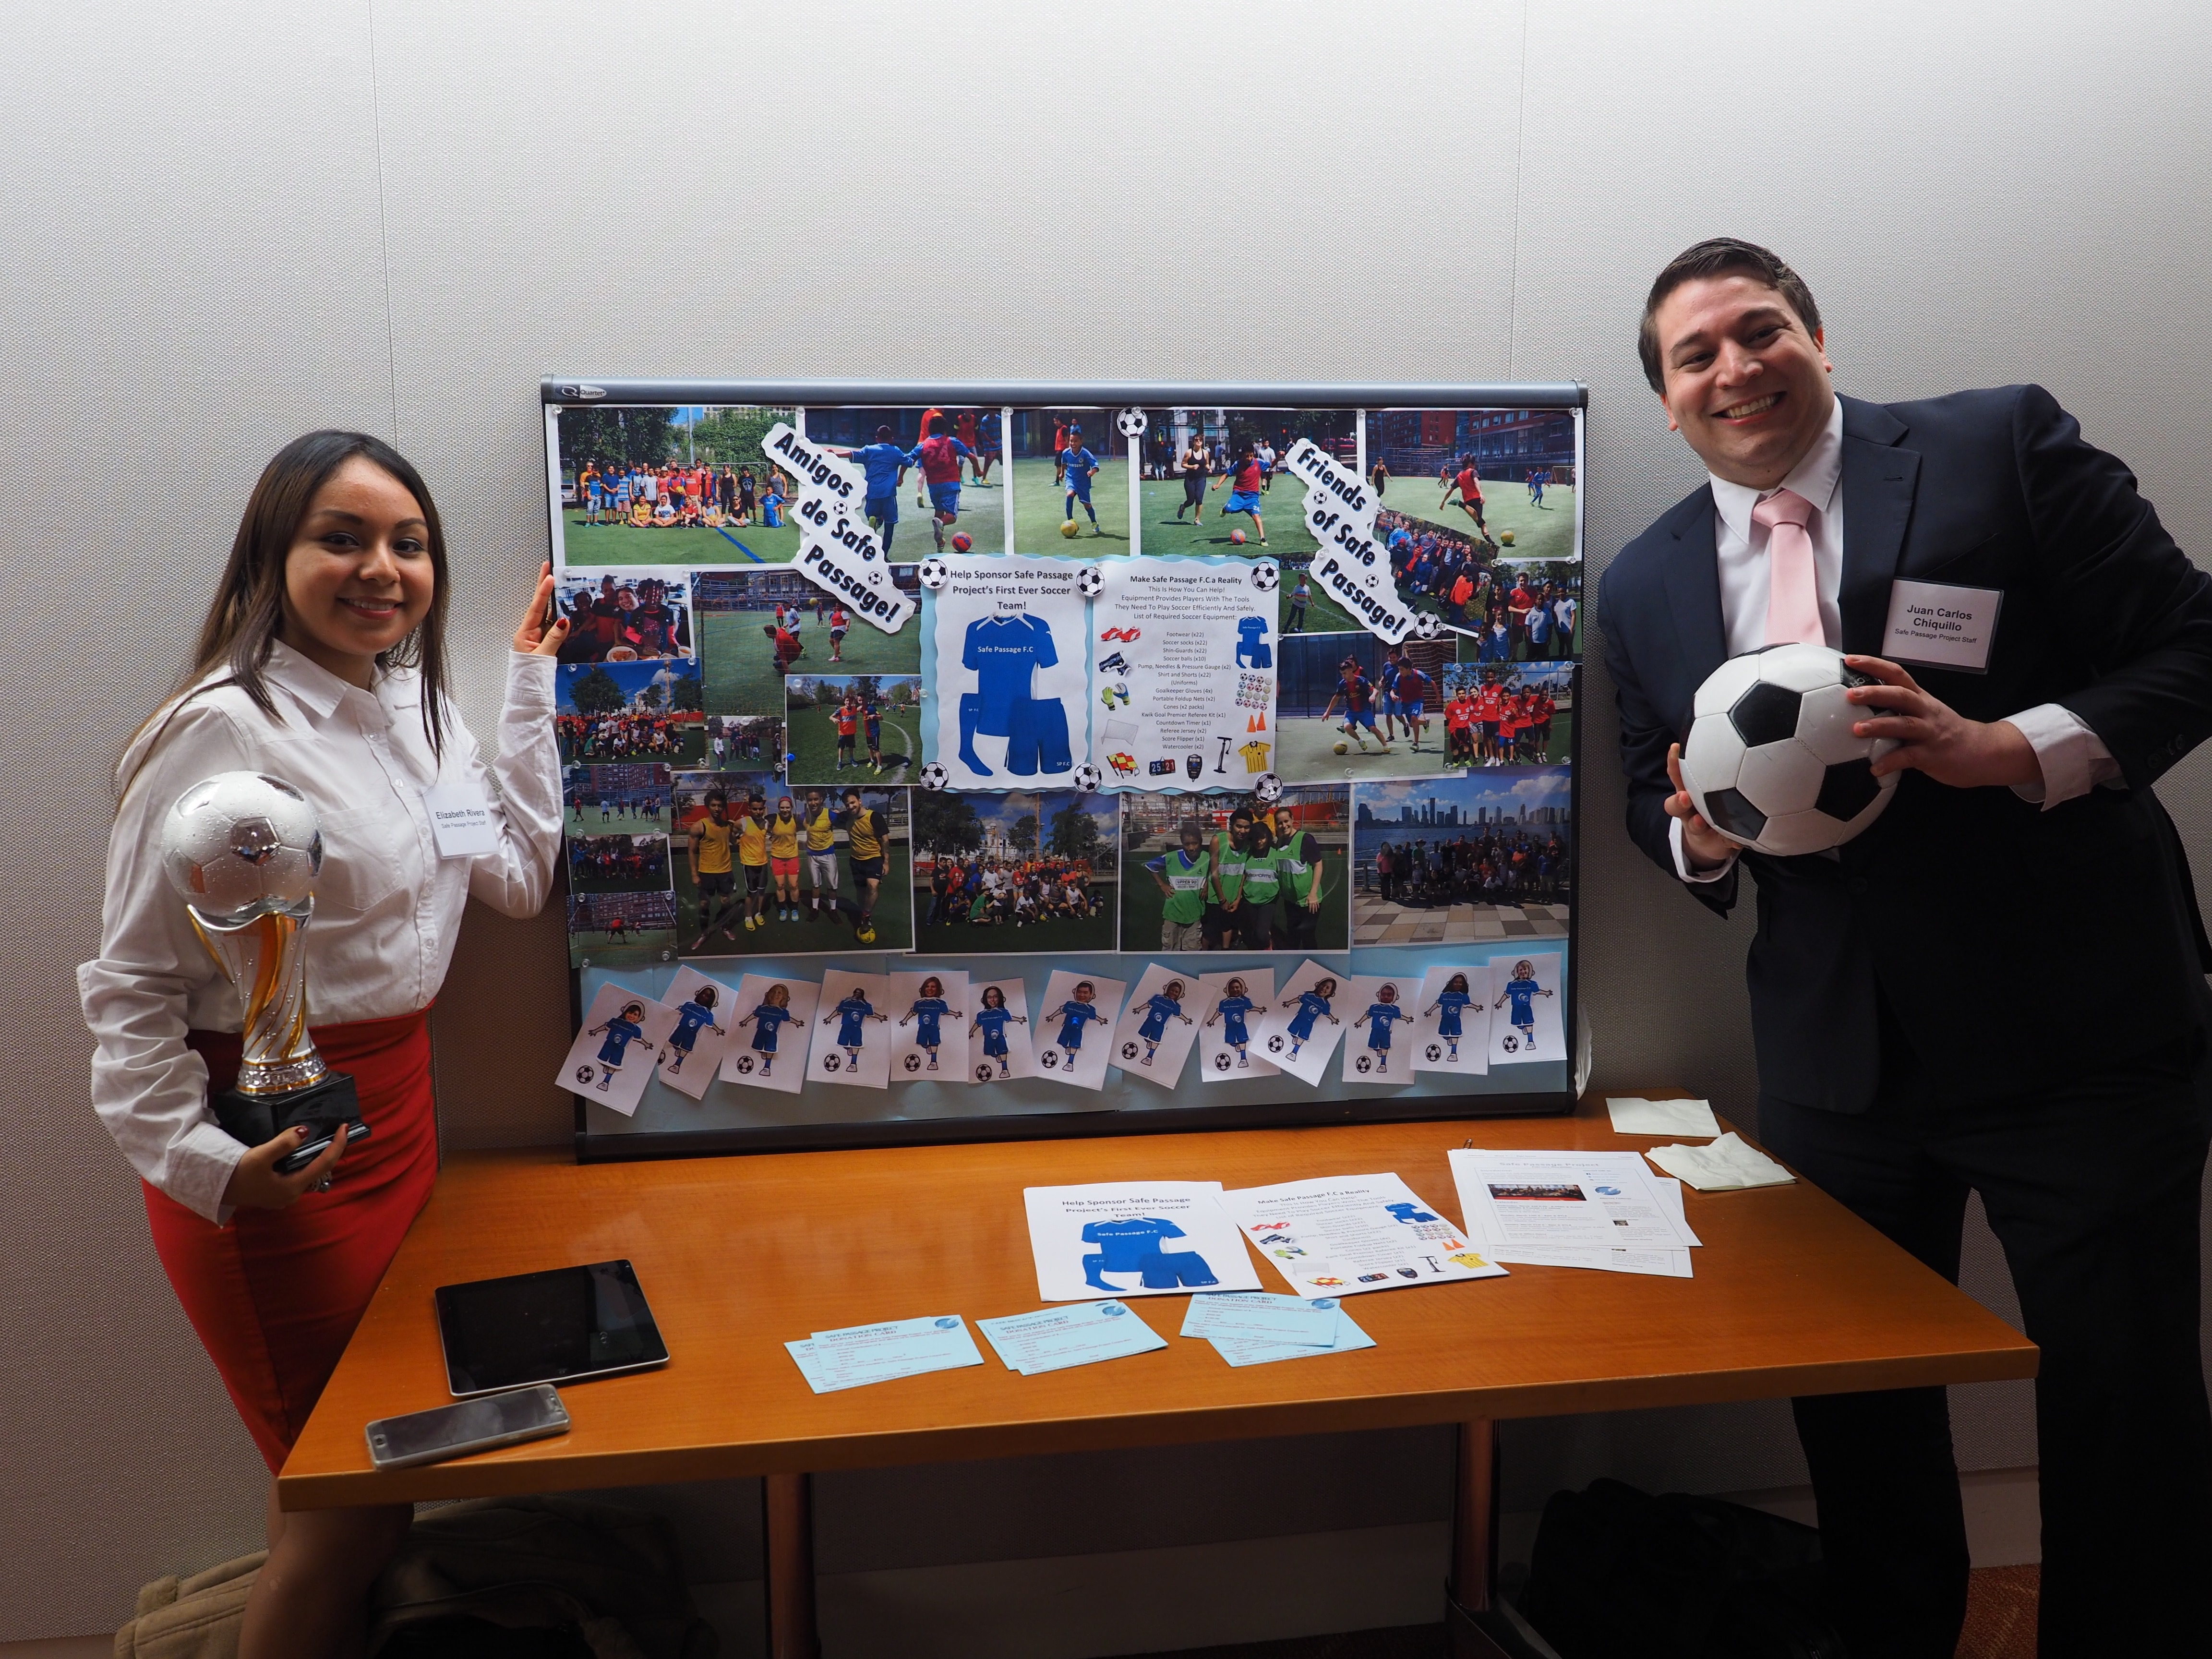 justice AmeriCorps fellows Elizabeth Rivera and Juan Carlos Chiquillo raise money for Amigos de Safe Passage Project soccer game